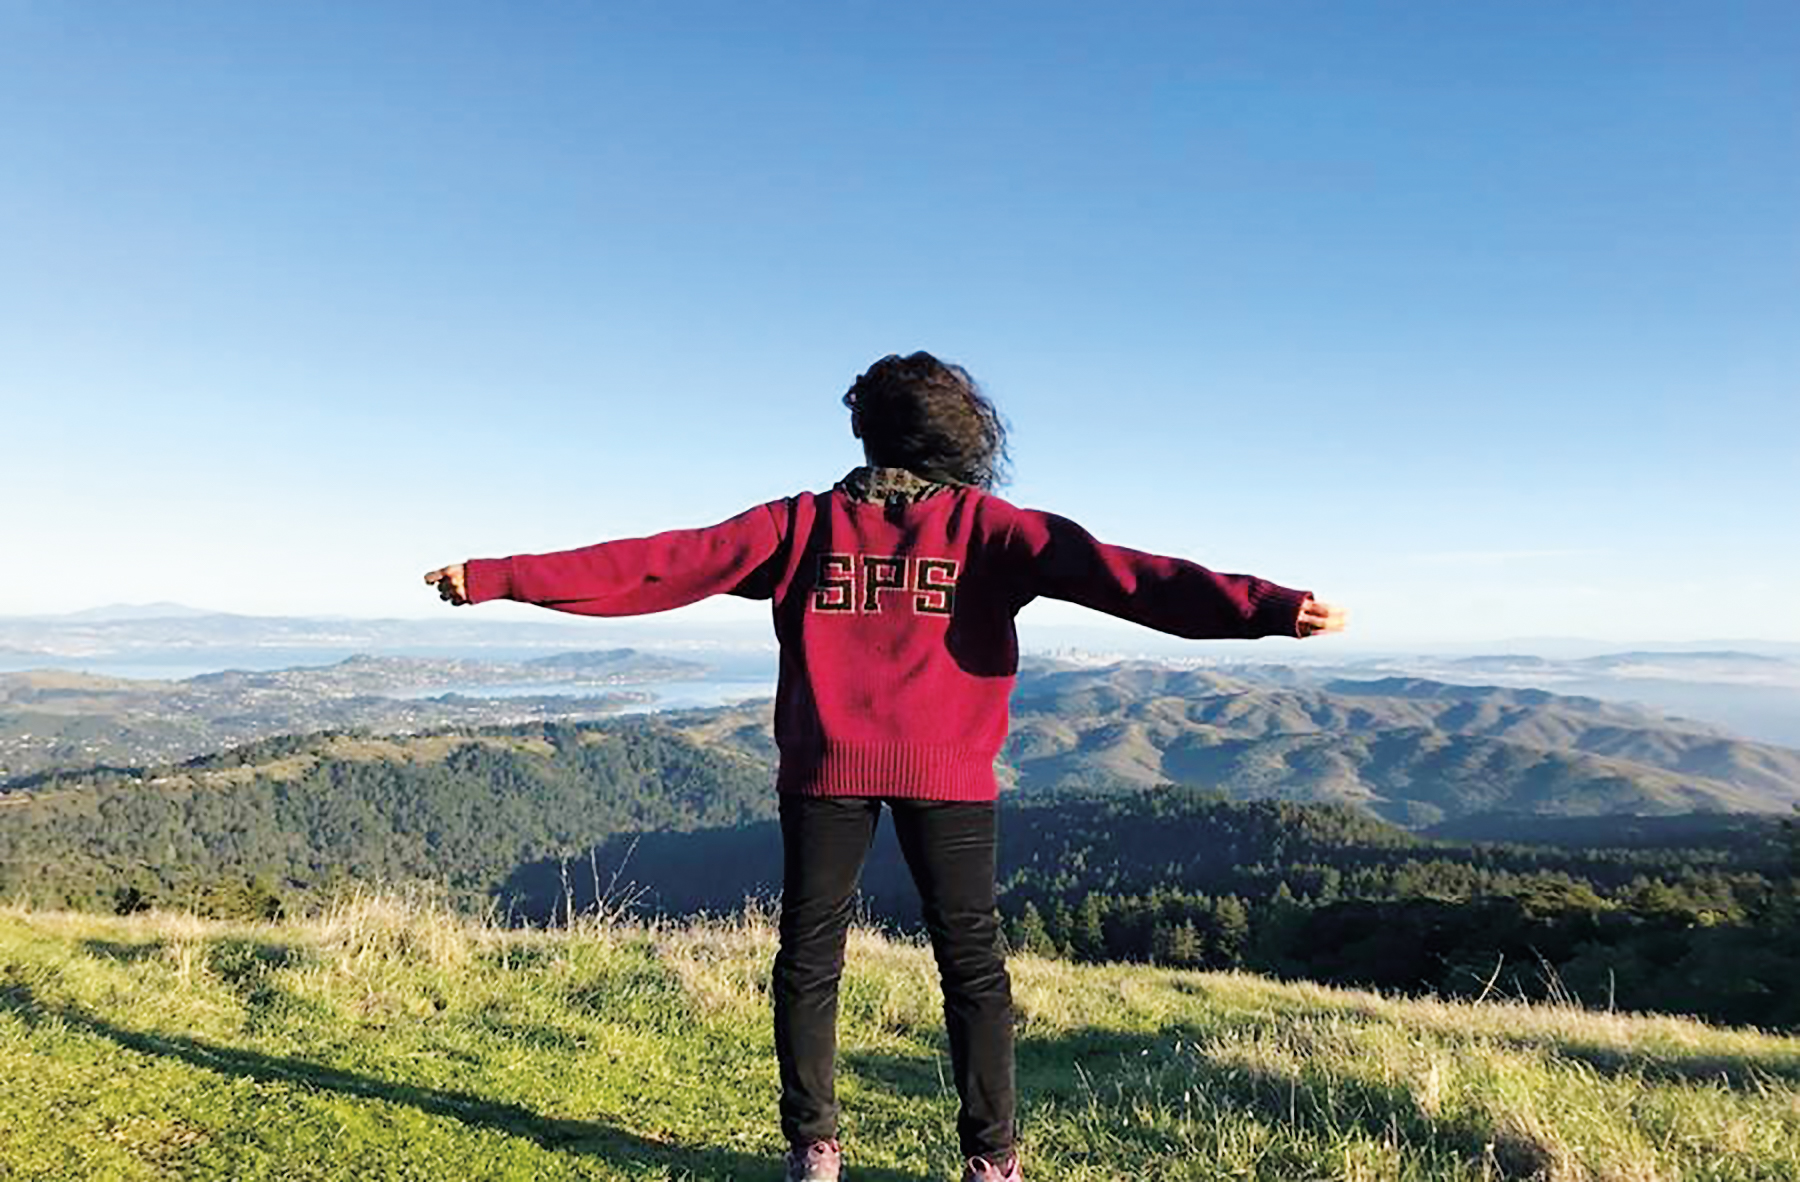 Sally Rousse '82 donning a classic SPS sweater and enjoying the view on top of Mount Tama, overlooking San Francisco.